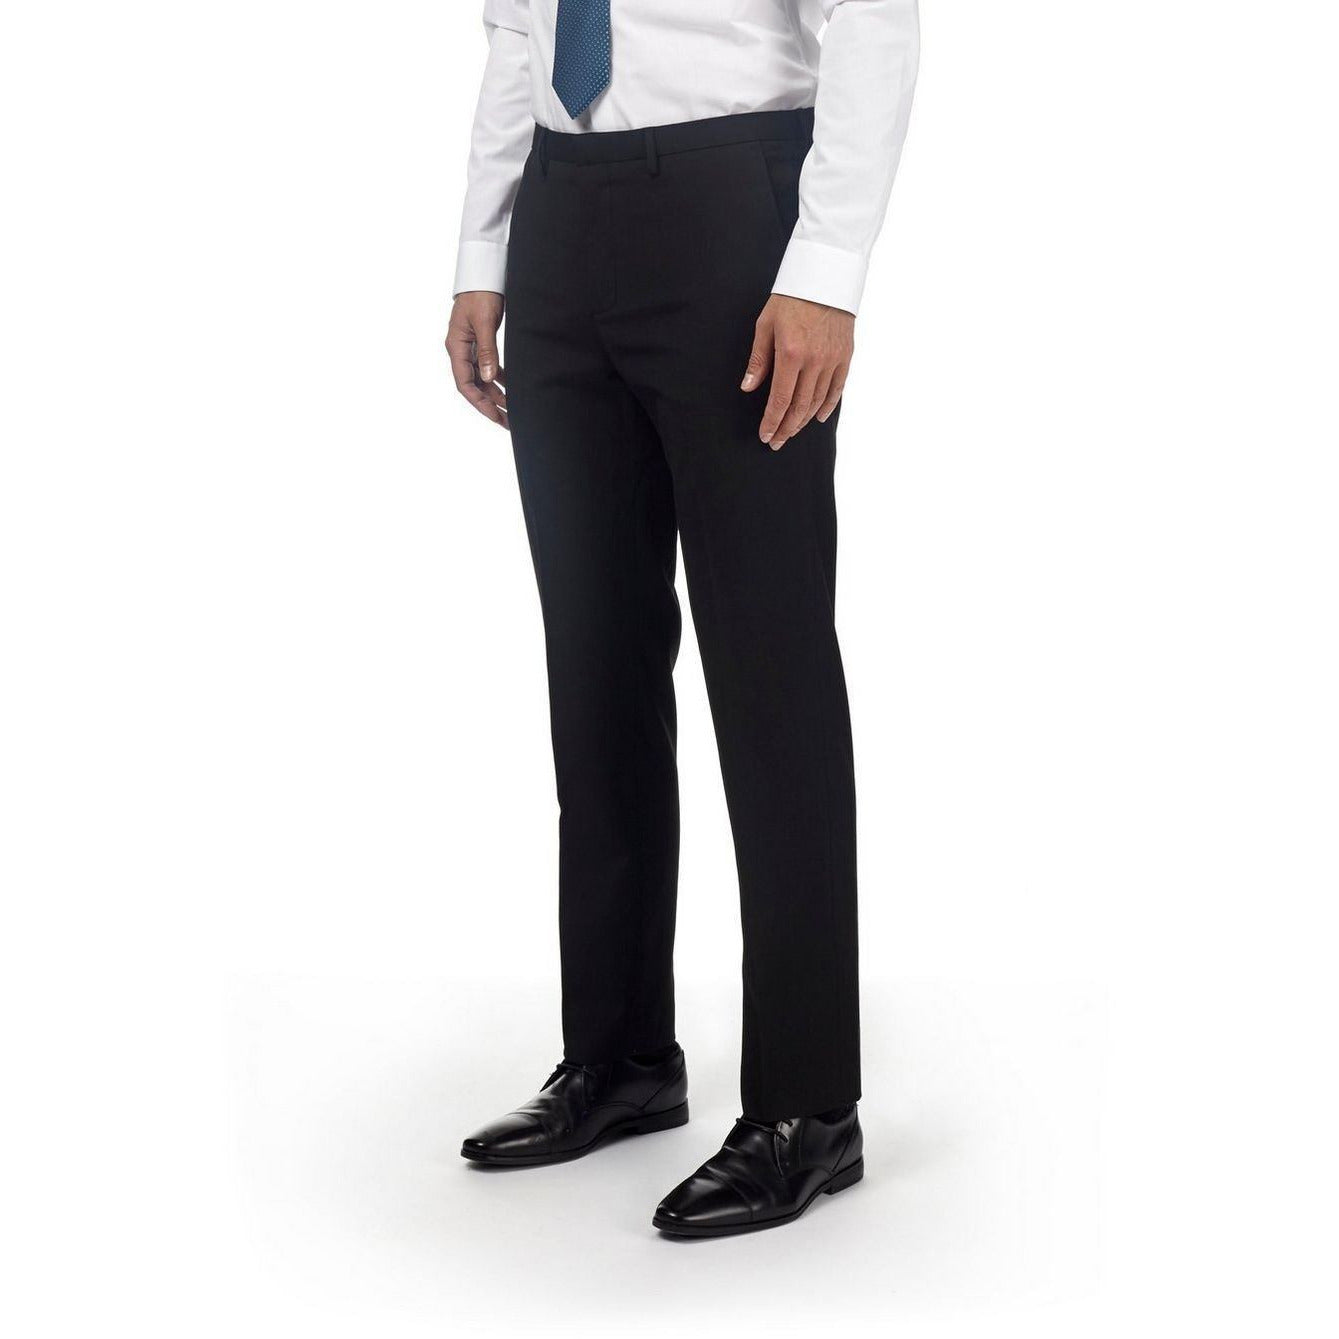 Boys Scool Trousers Size 14-15 Yrs